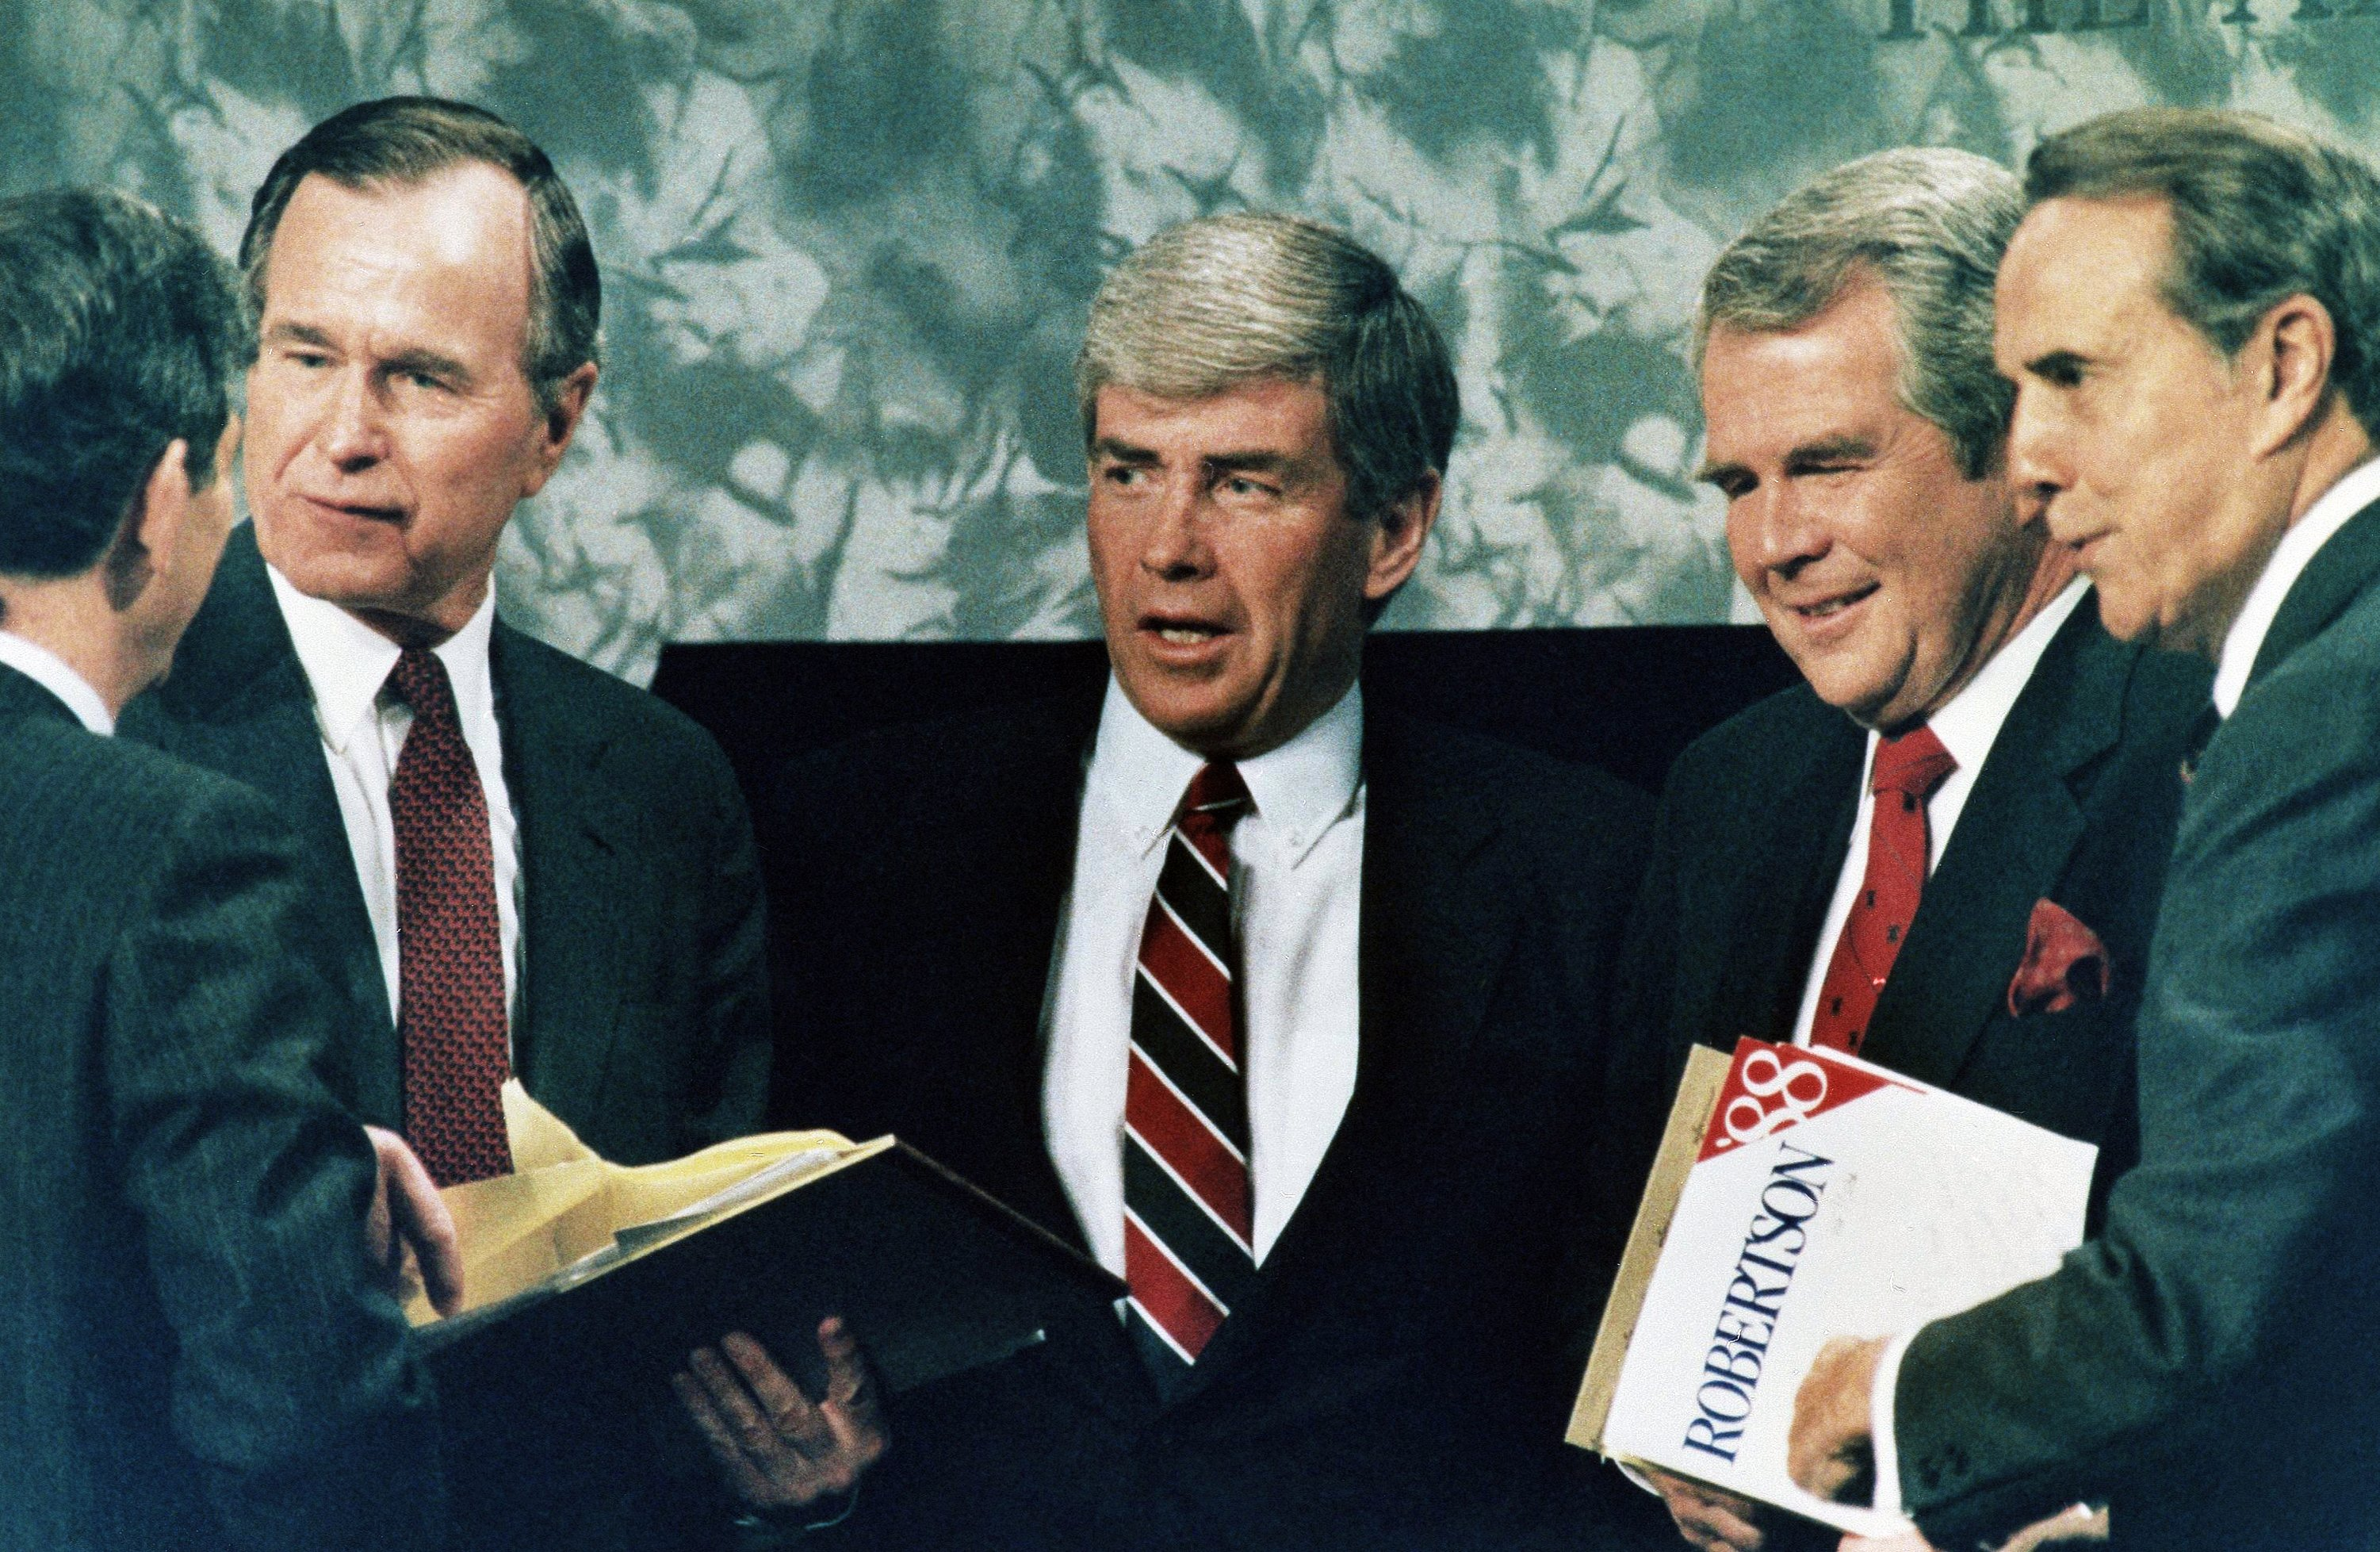 Republican presidential candidates in 1988 included, from left, Vice President George Bush, Rep. Jack Kemp, Pat Robertson, and Sen. Robert Dole after a debate in Atlanta on Feb. 28, 1988. (AP Photo)